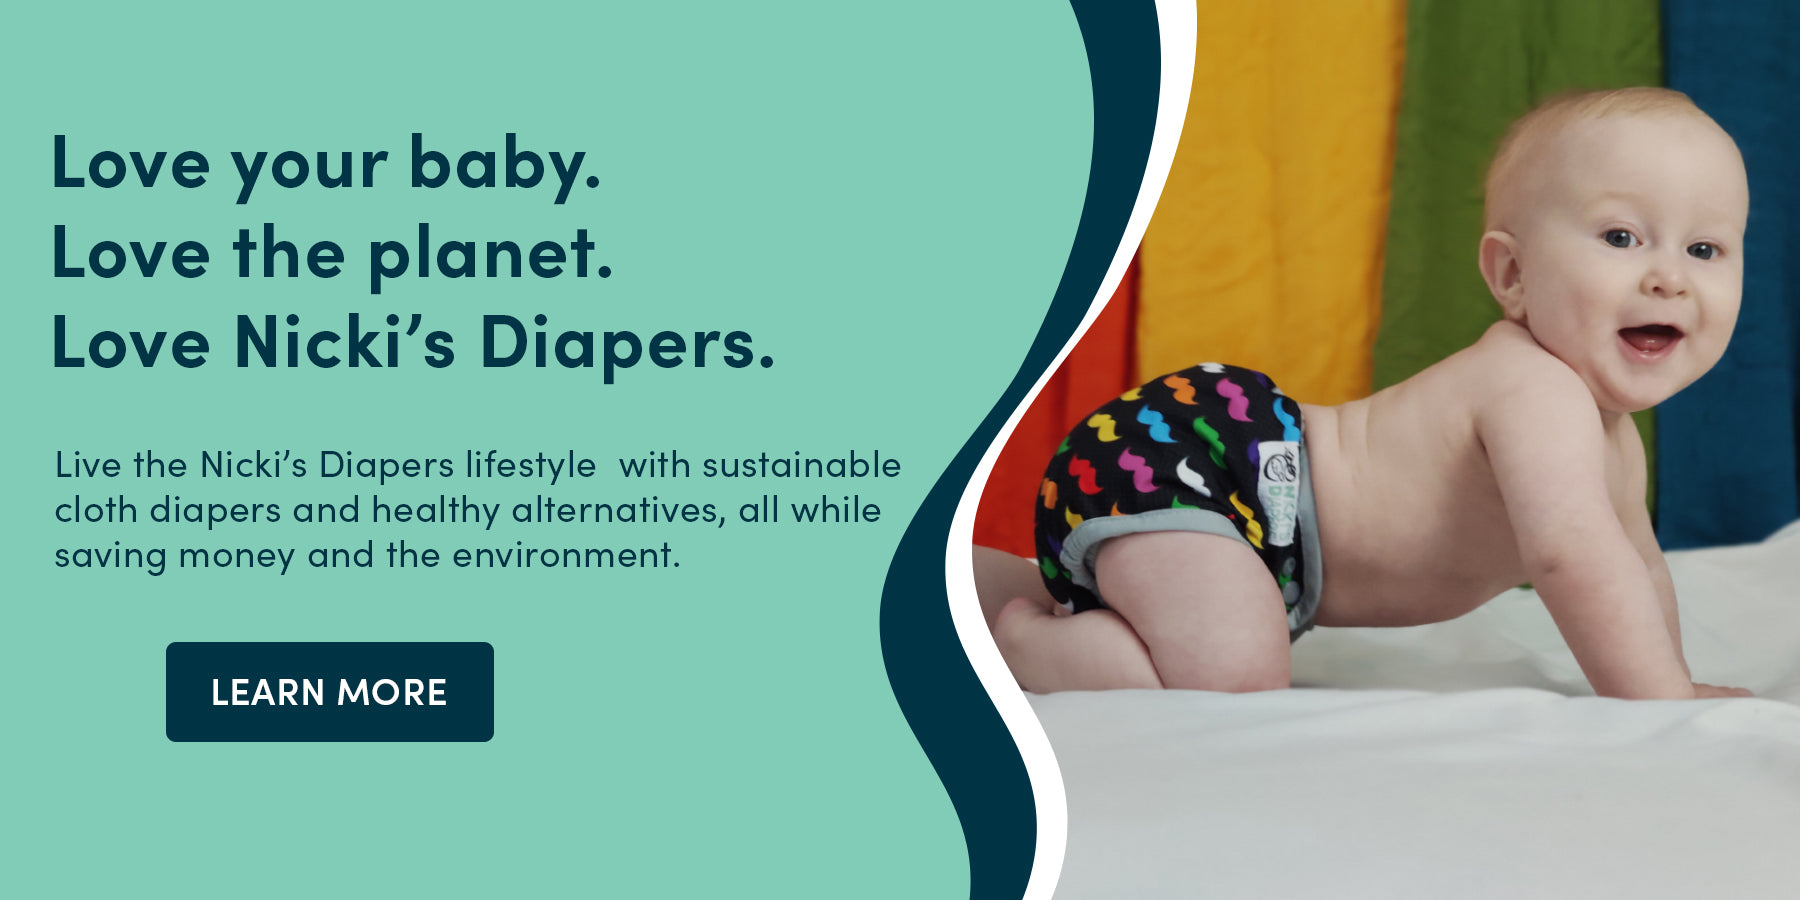 Save the World with Cloth Diapers on Sale from Nicki's Diapers now! Don't miss out on celebrating Earth Day with cloth diapering